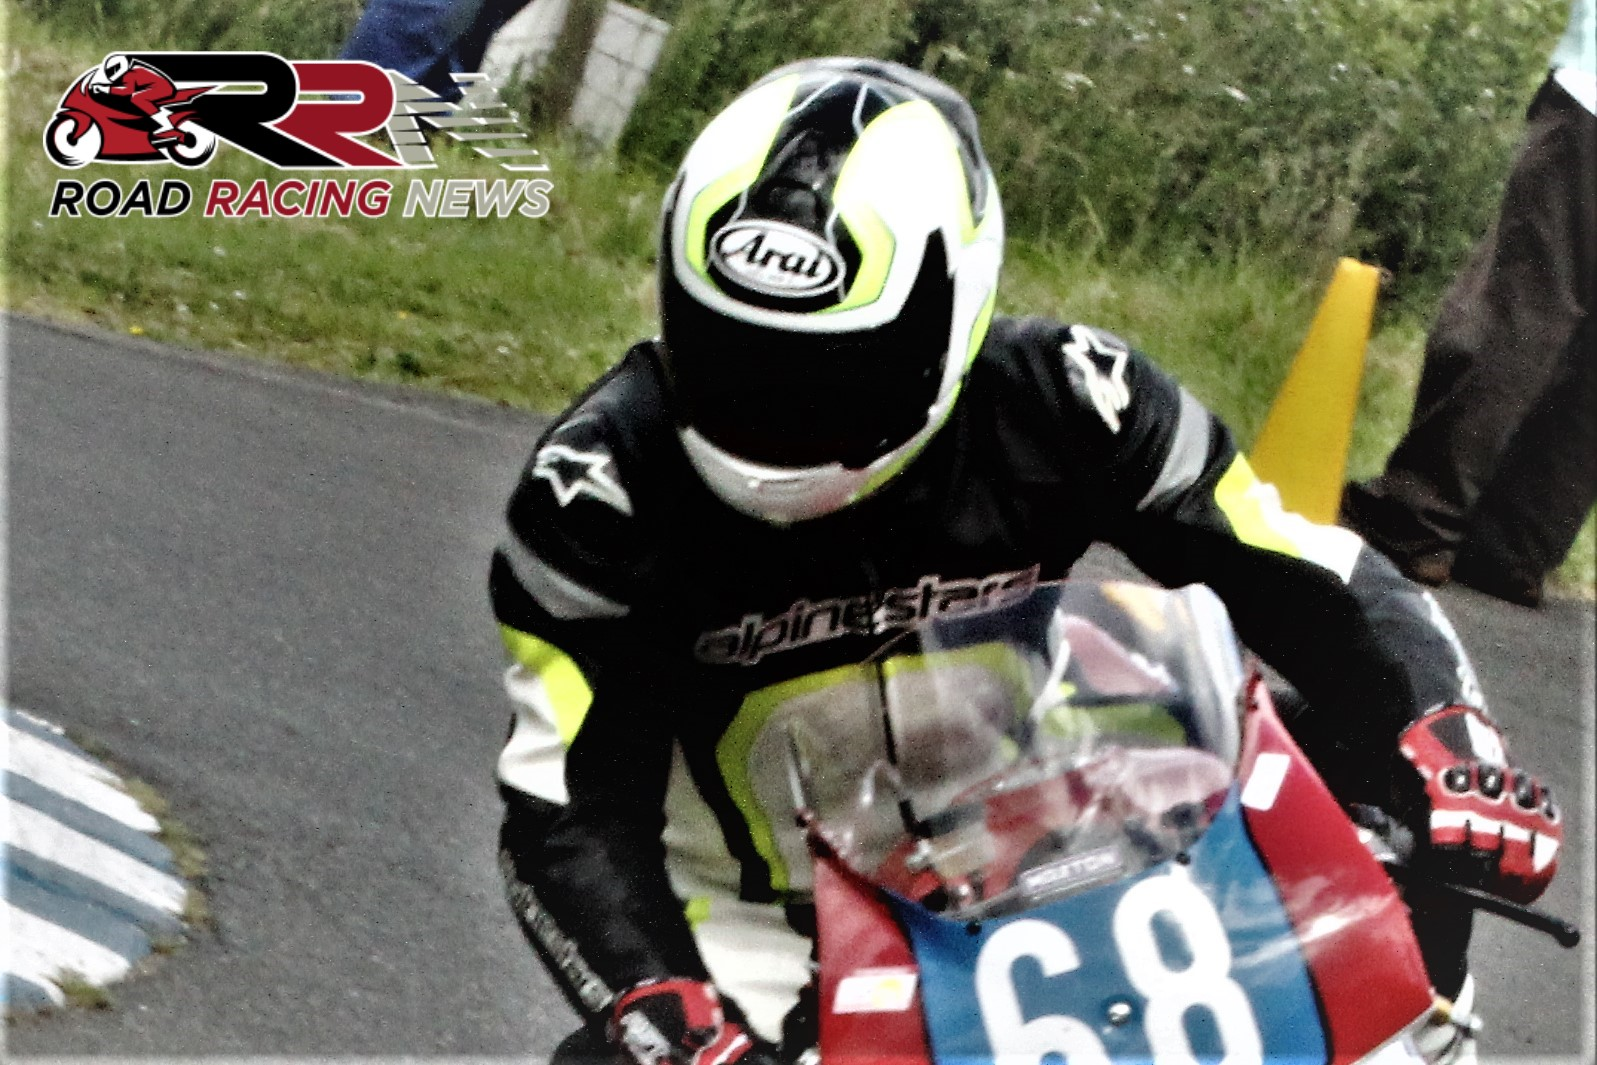 Oliver's Mount Top 8: Alister Chadwick